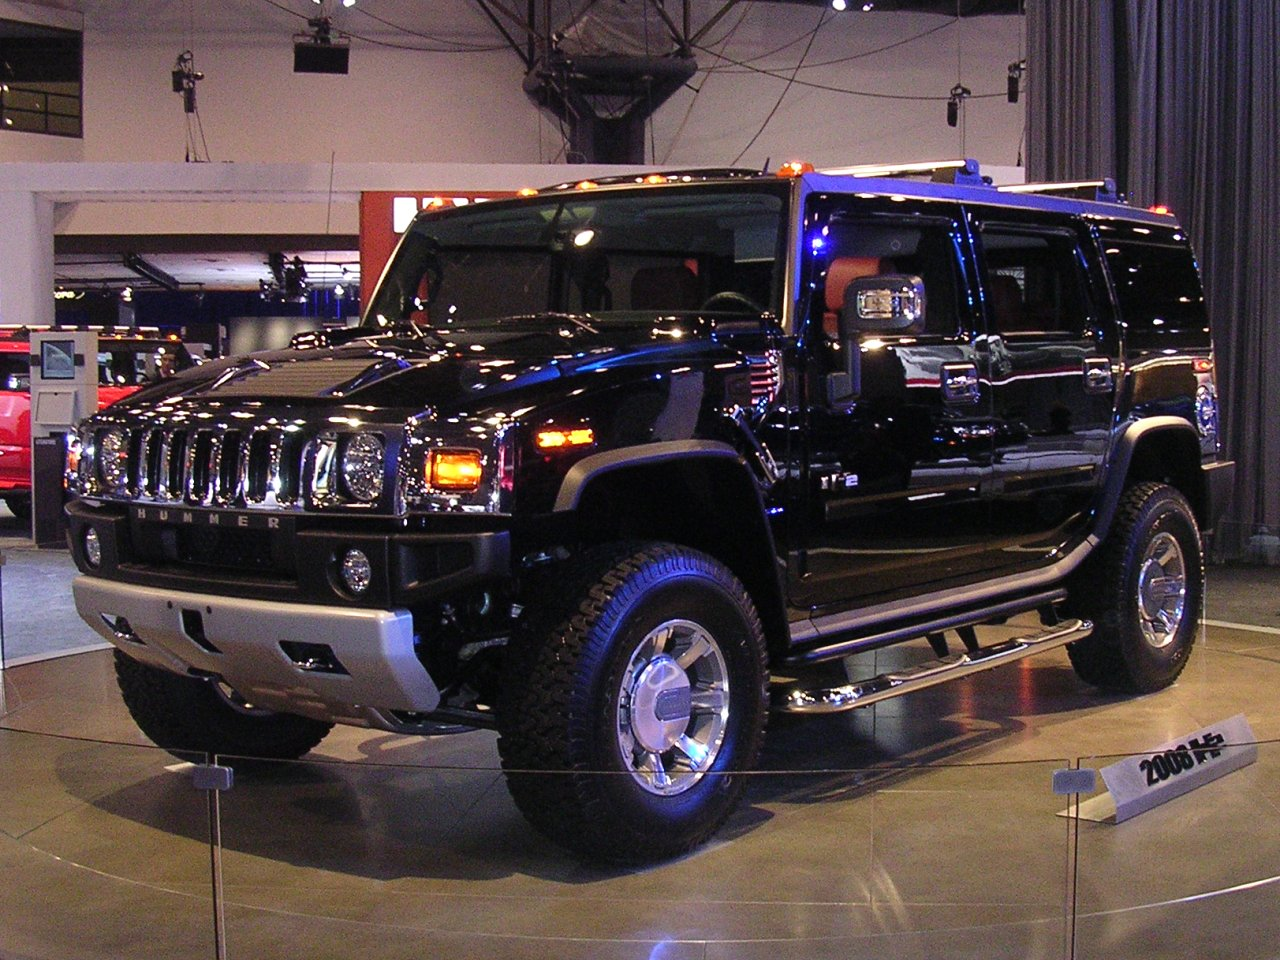 14 hummer related images,start 14 - WeiLi Automotive Network | 2013 hummer price